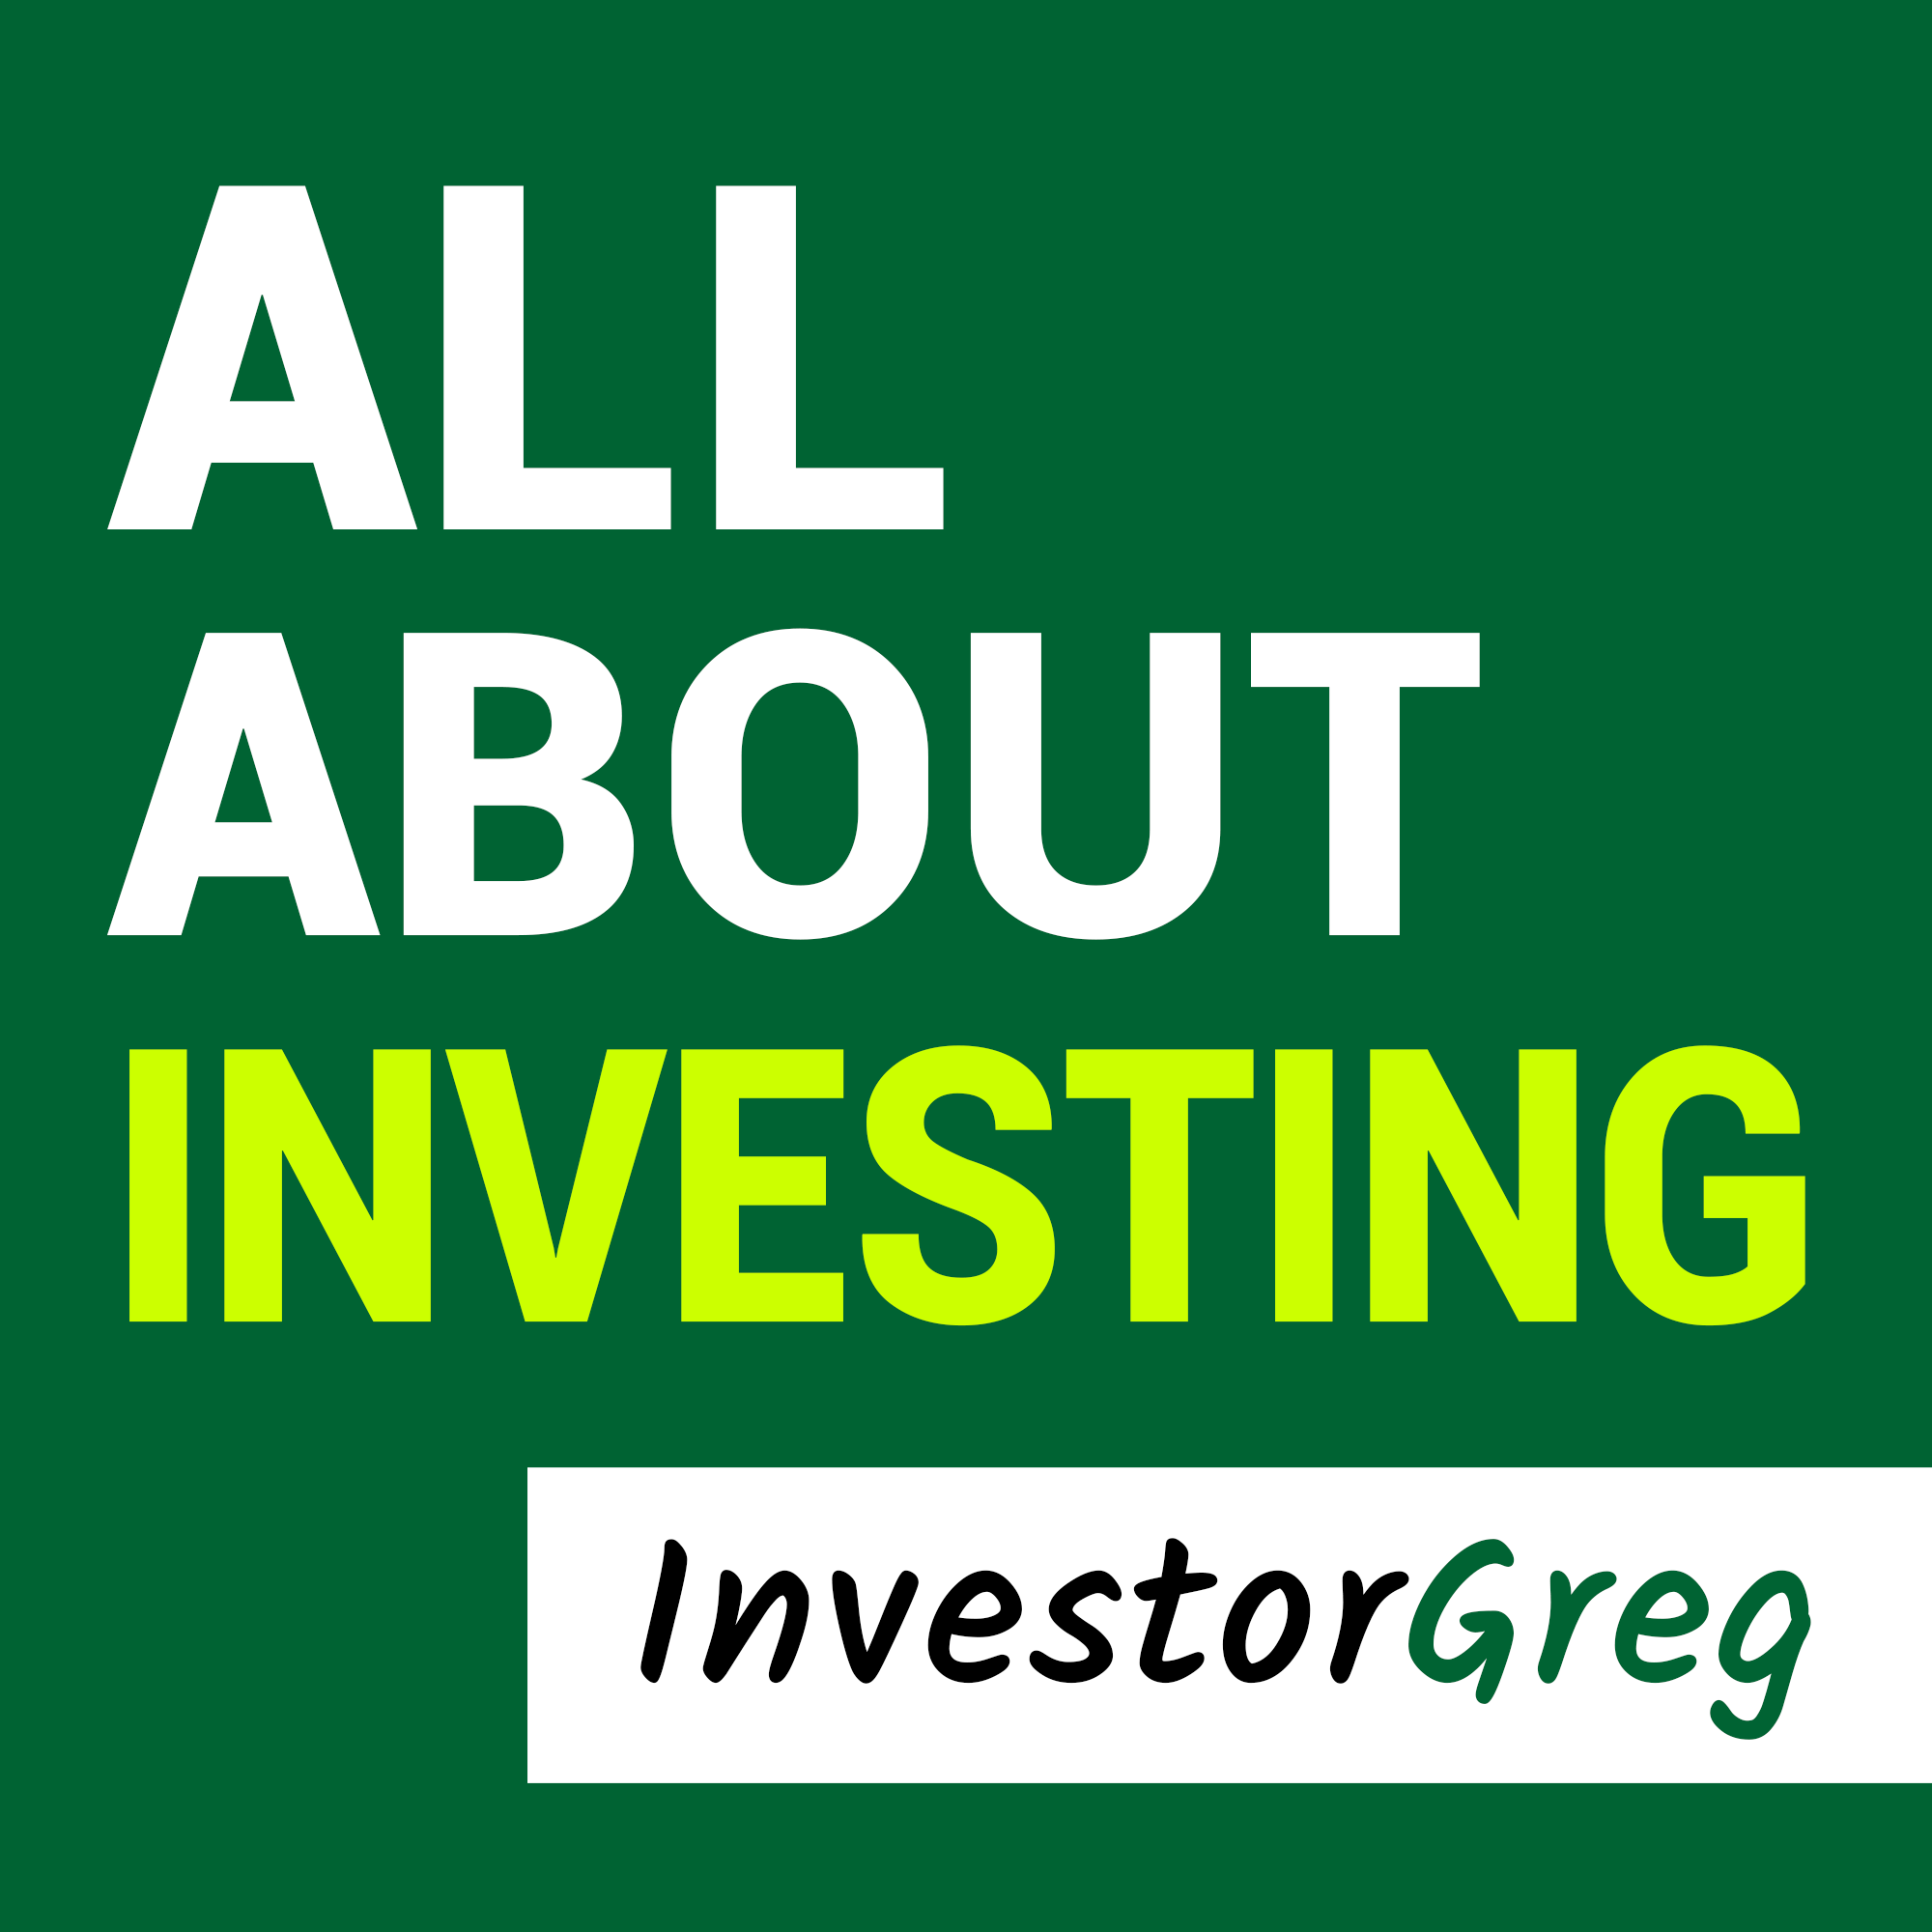 All About Investing - InvestorGreg Podcast